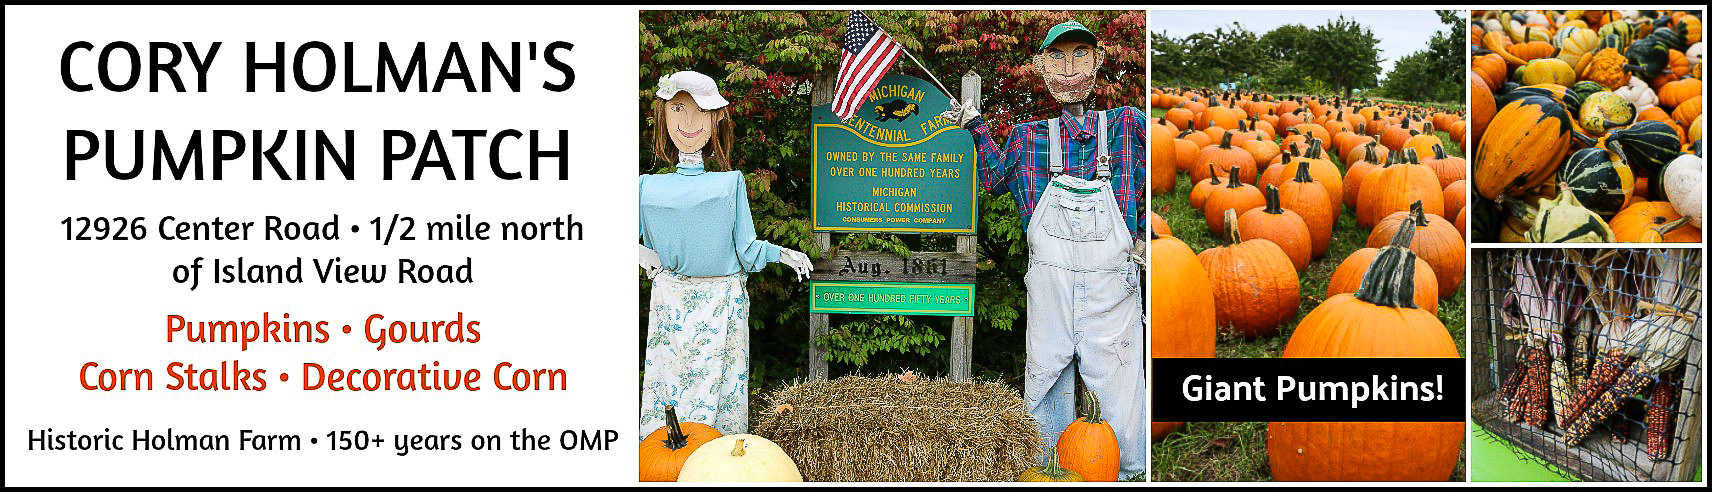 Cory Holman's Pumpkin Patch on the Old Mission Peninsula